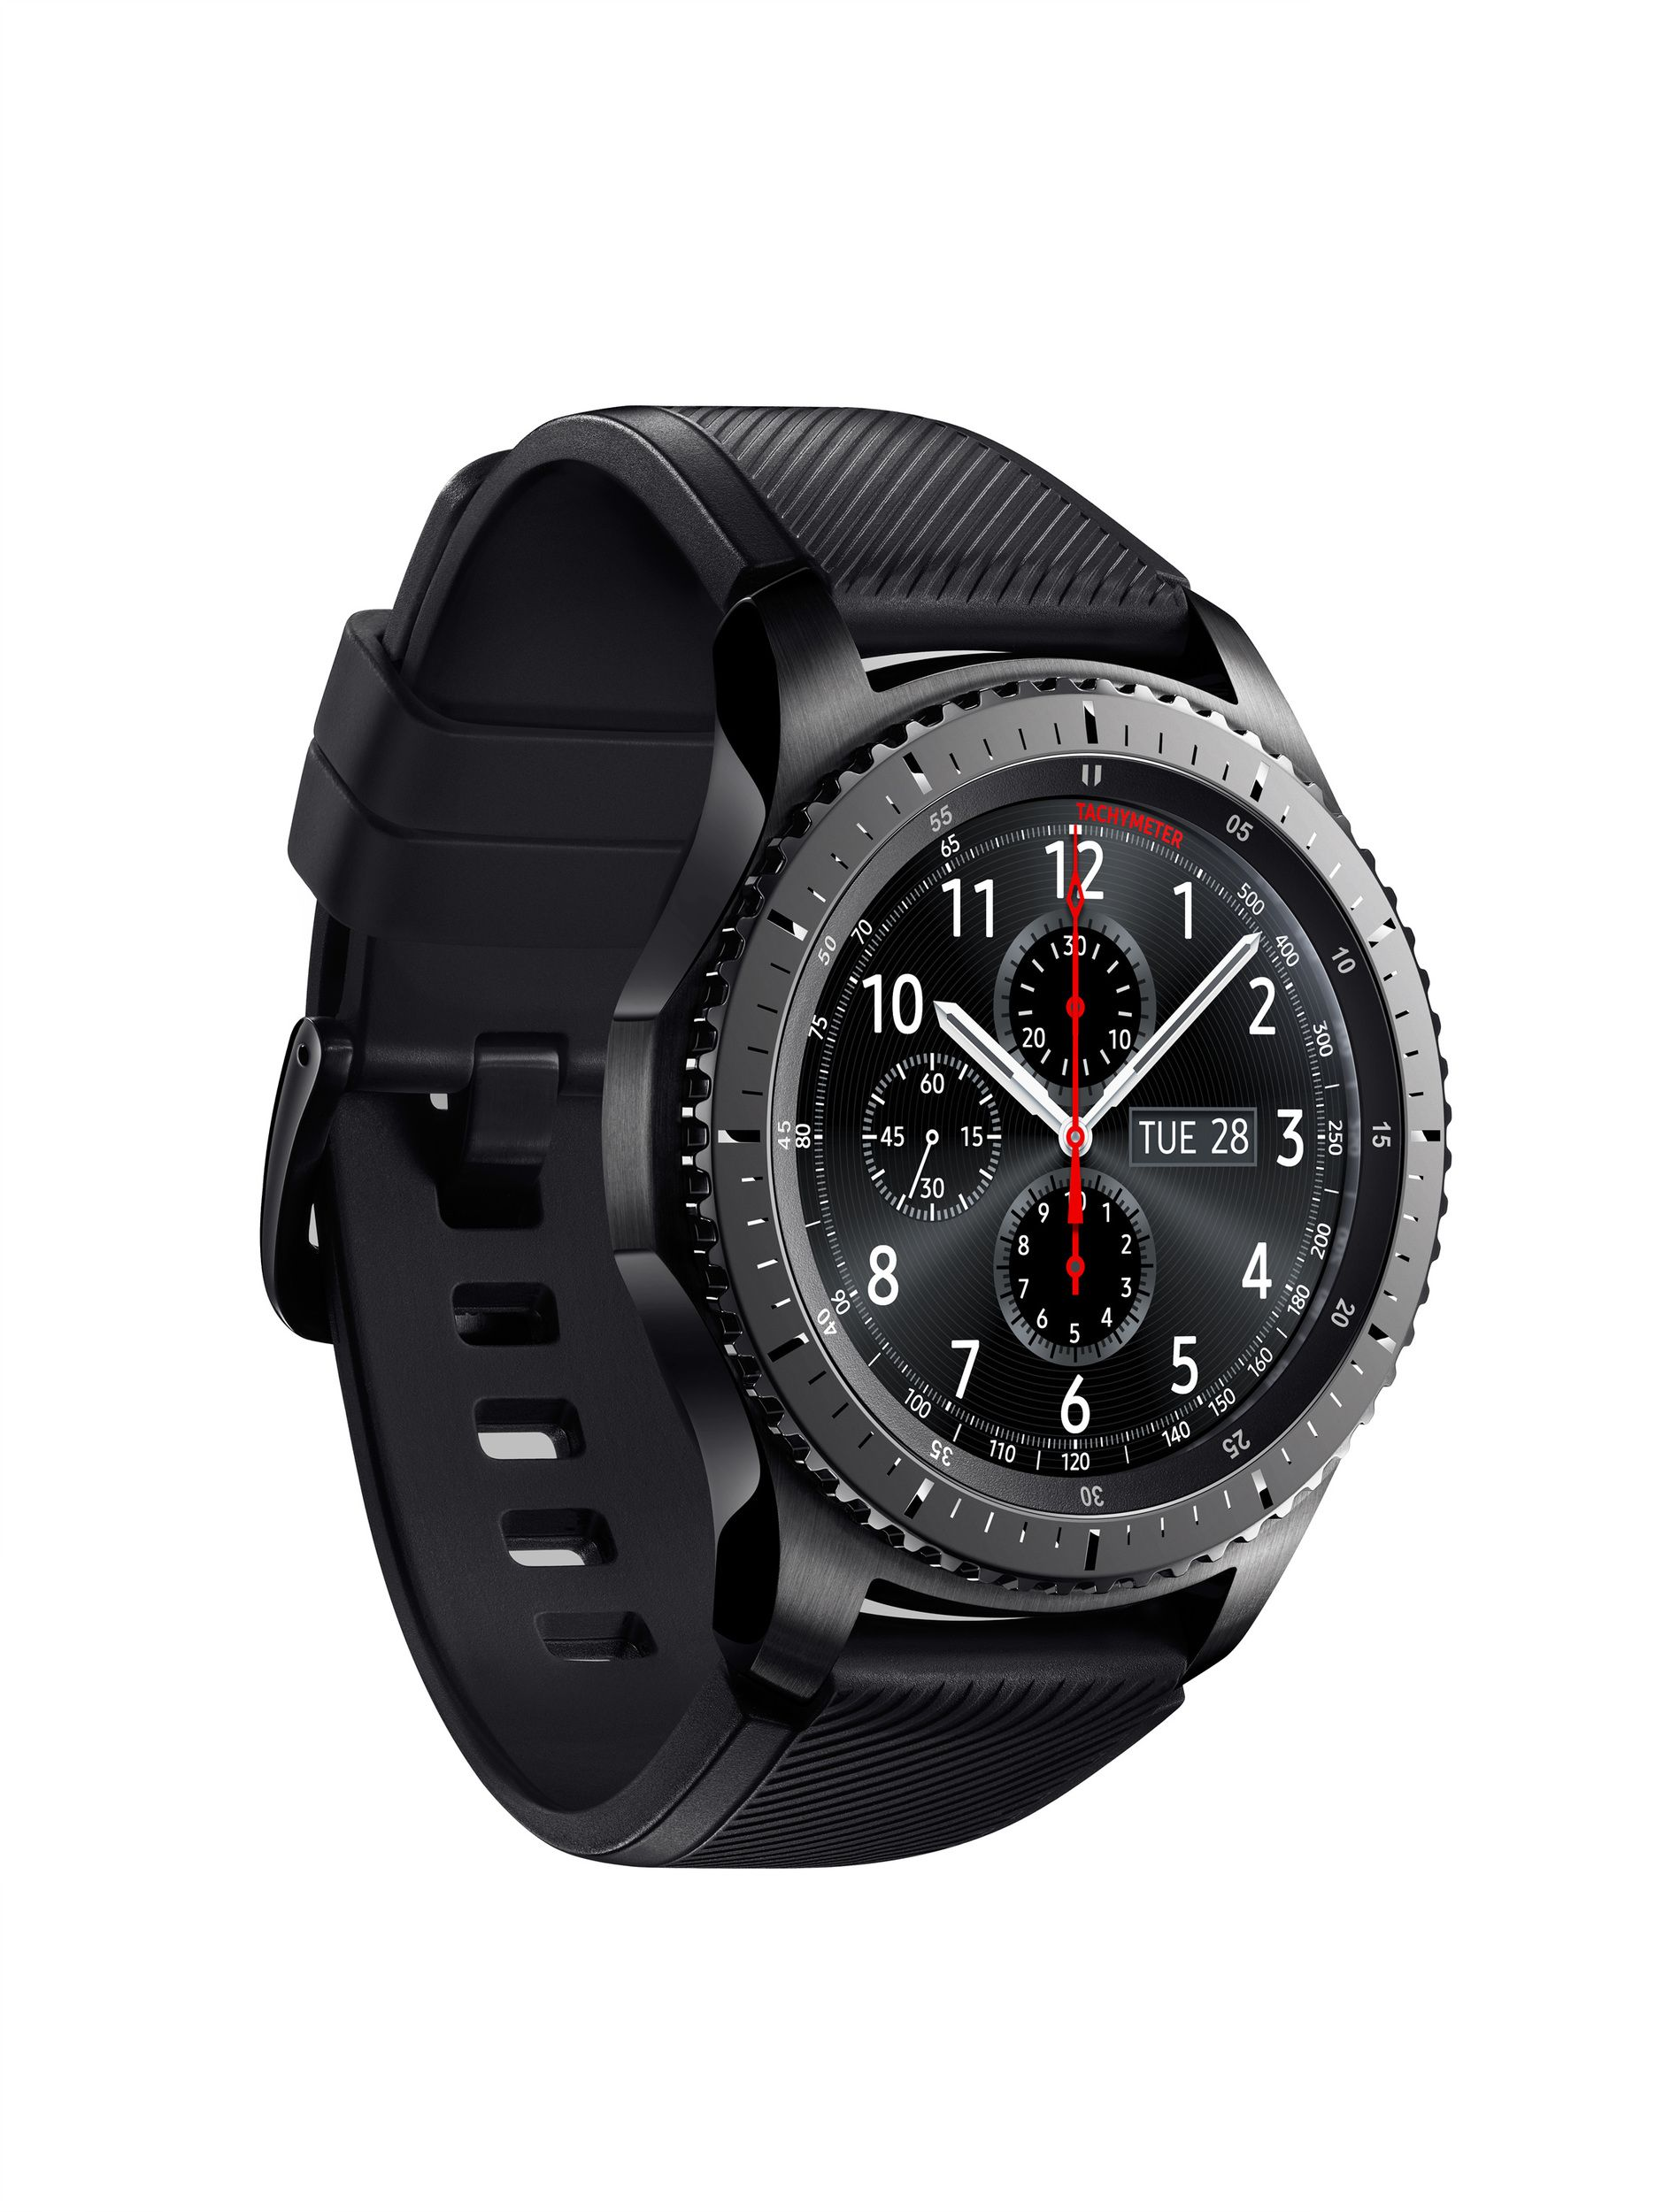 Samsung S Gear S3 Watches Are More Elegant And Rugged Than Ever Smart Watch Samsung Smart Watch Samsung Gear S3 Frontier